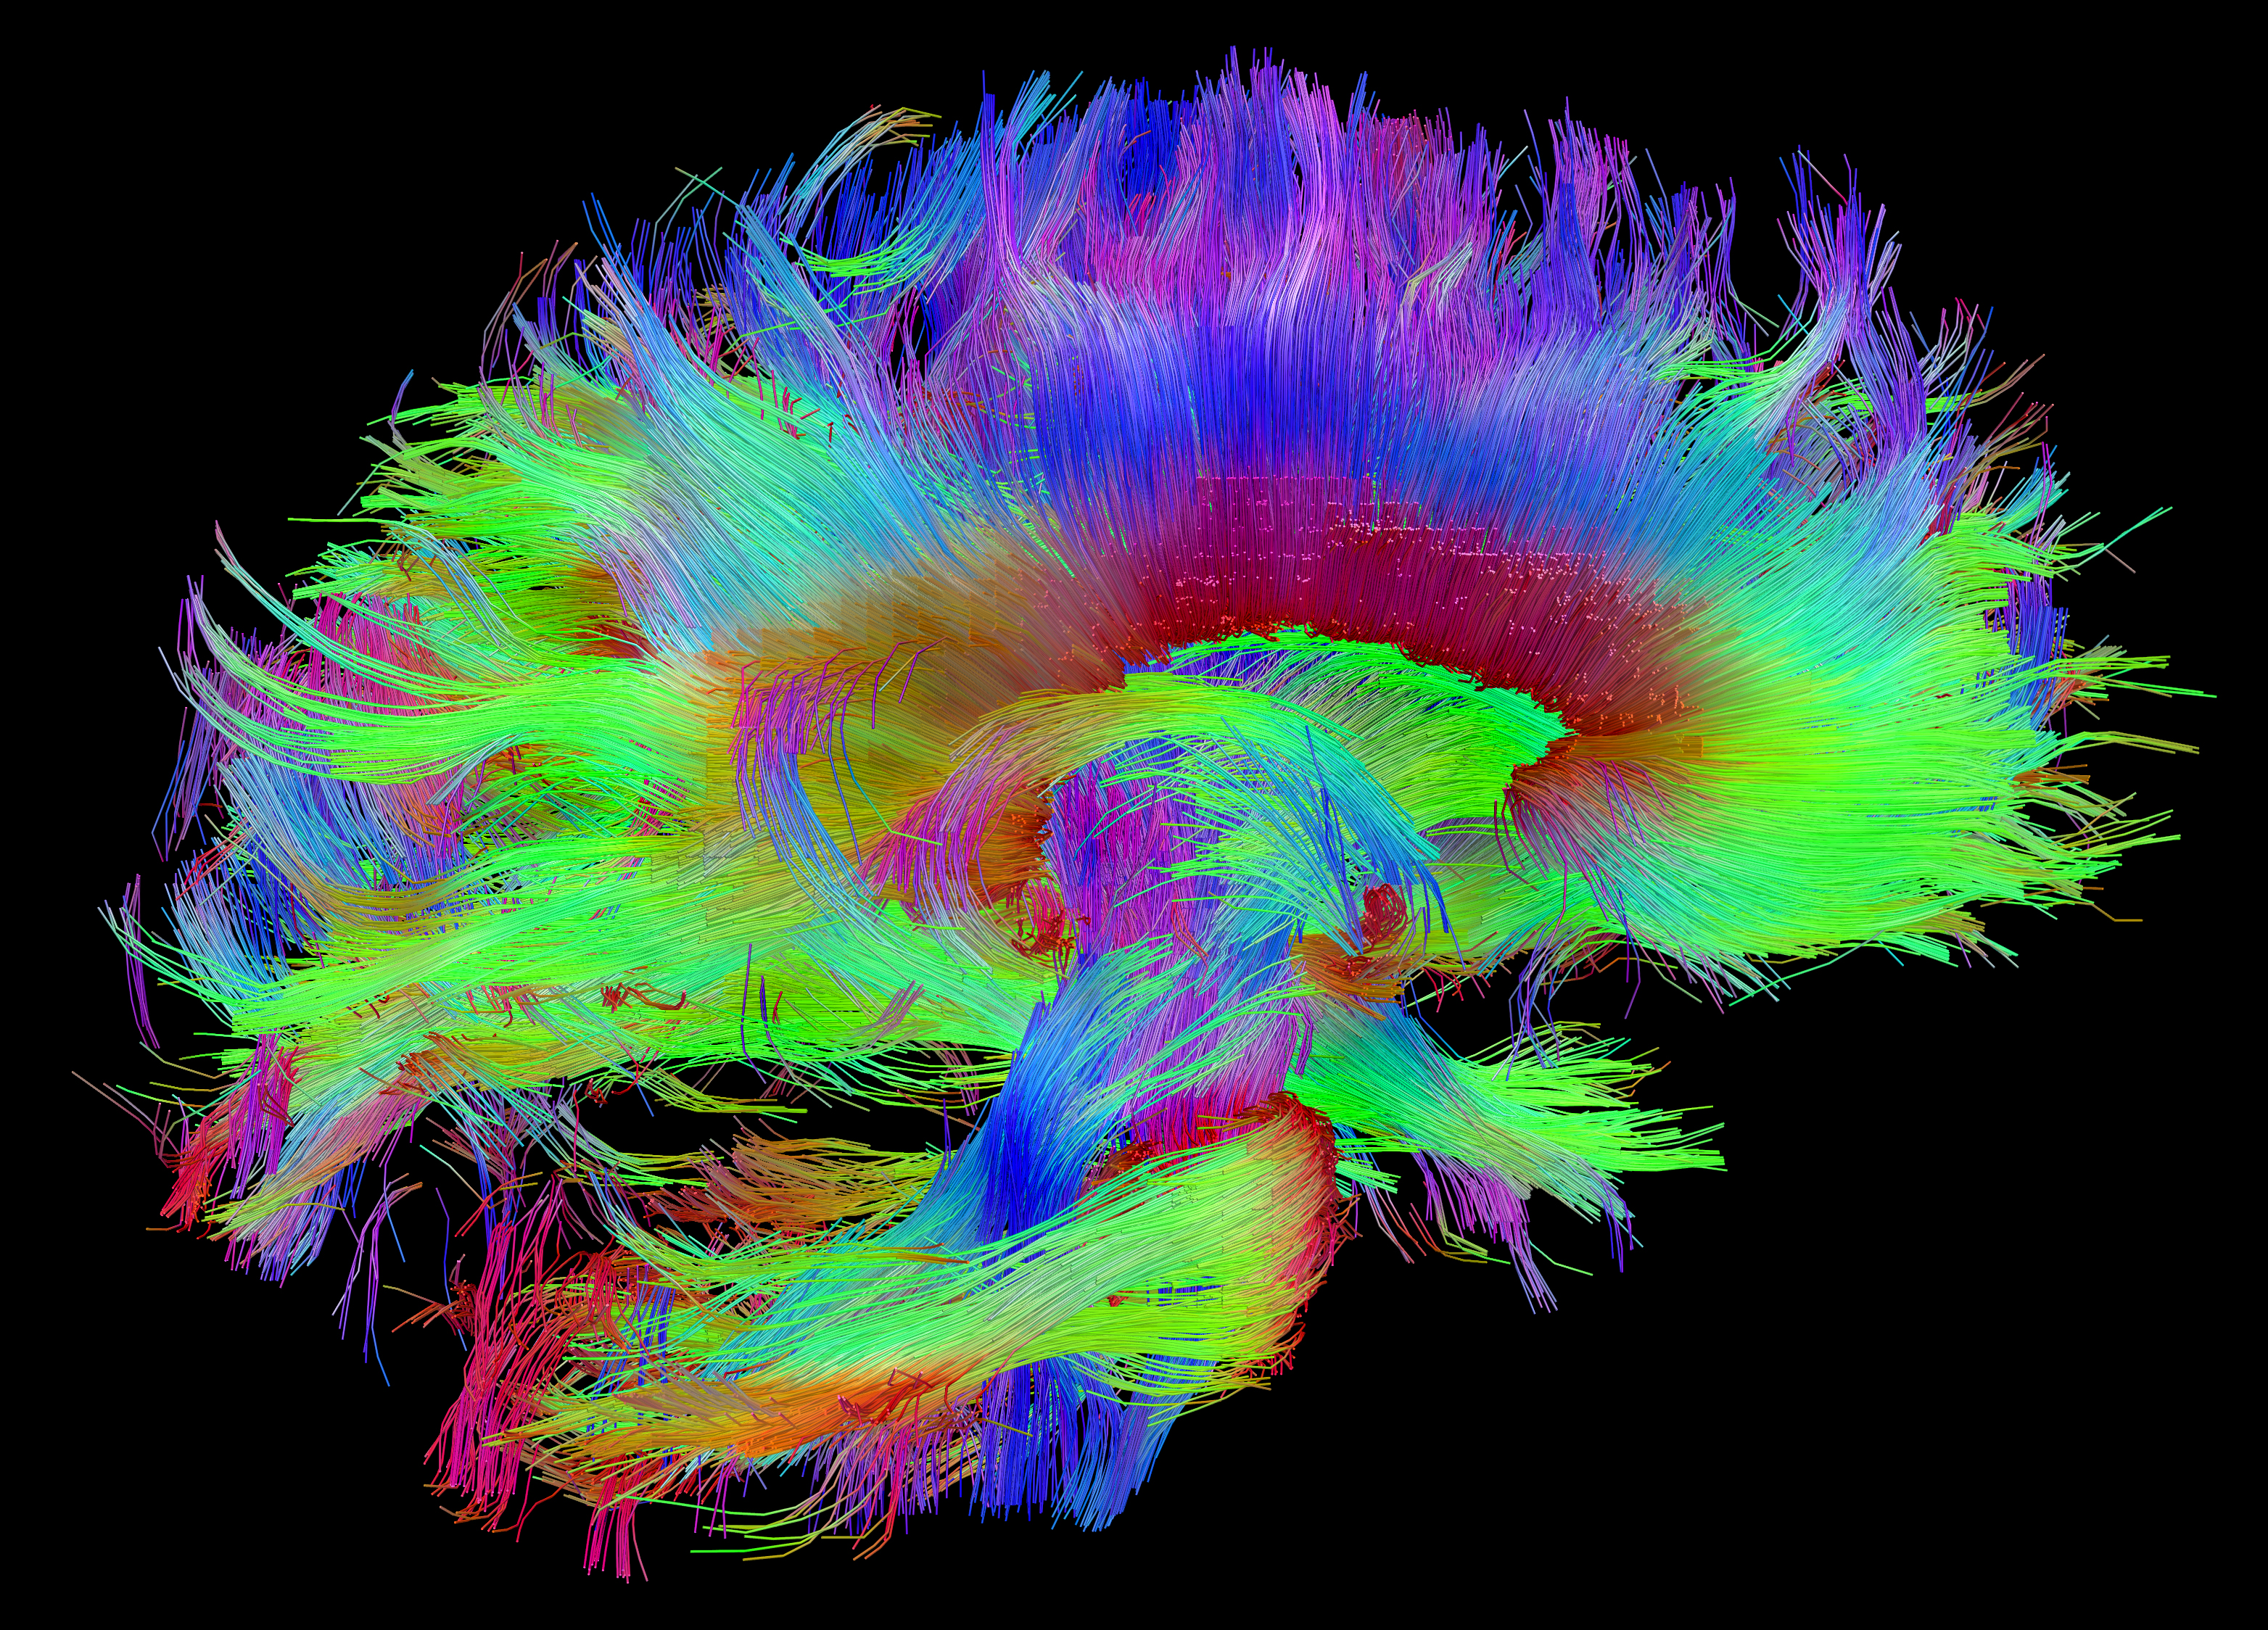 making the connections study links brain s wiring to human traits rh directorsblog nih gov wiring of the brain definition wiring of the brain pdf